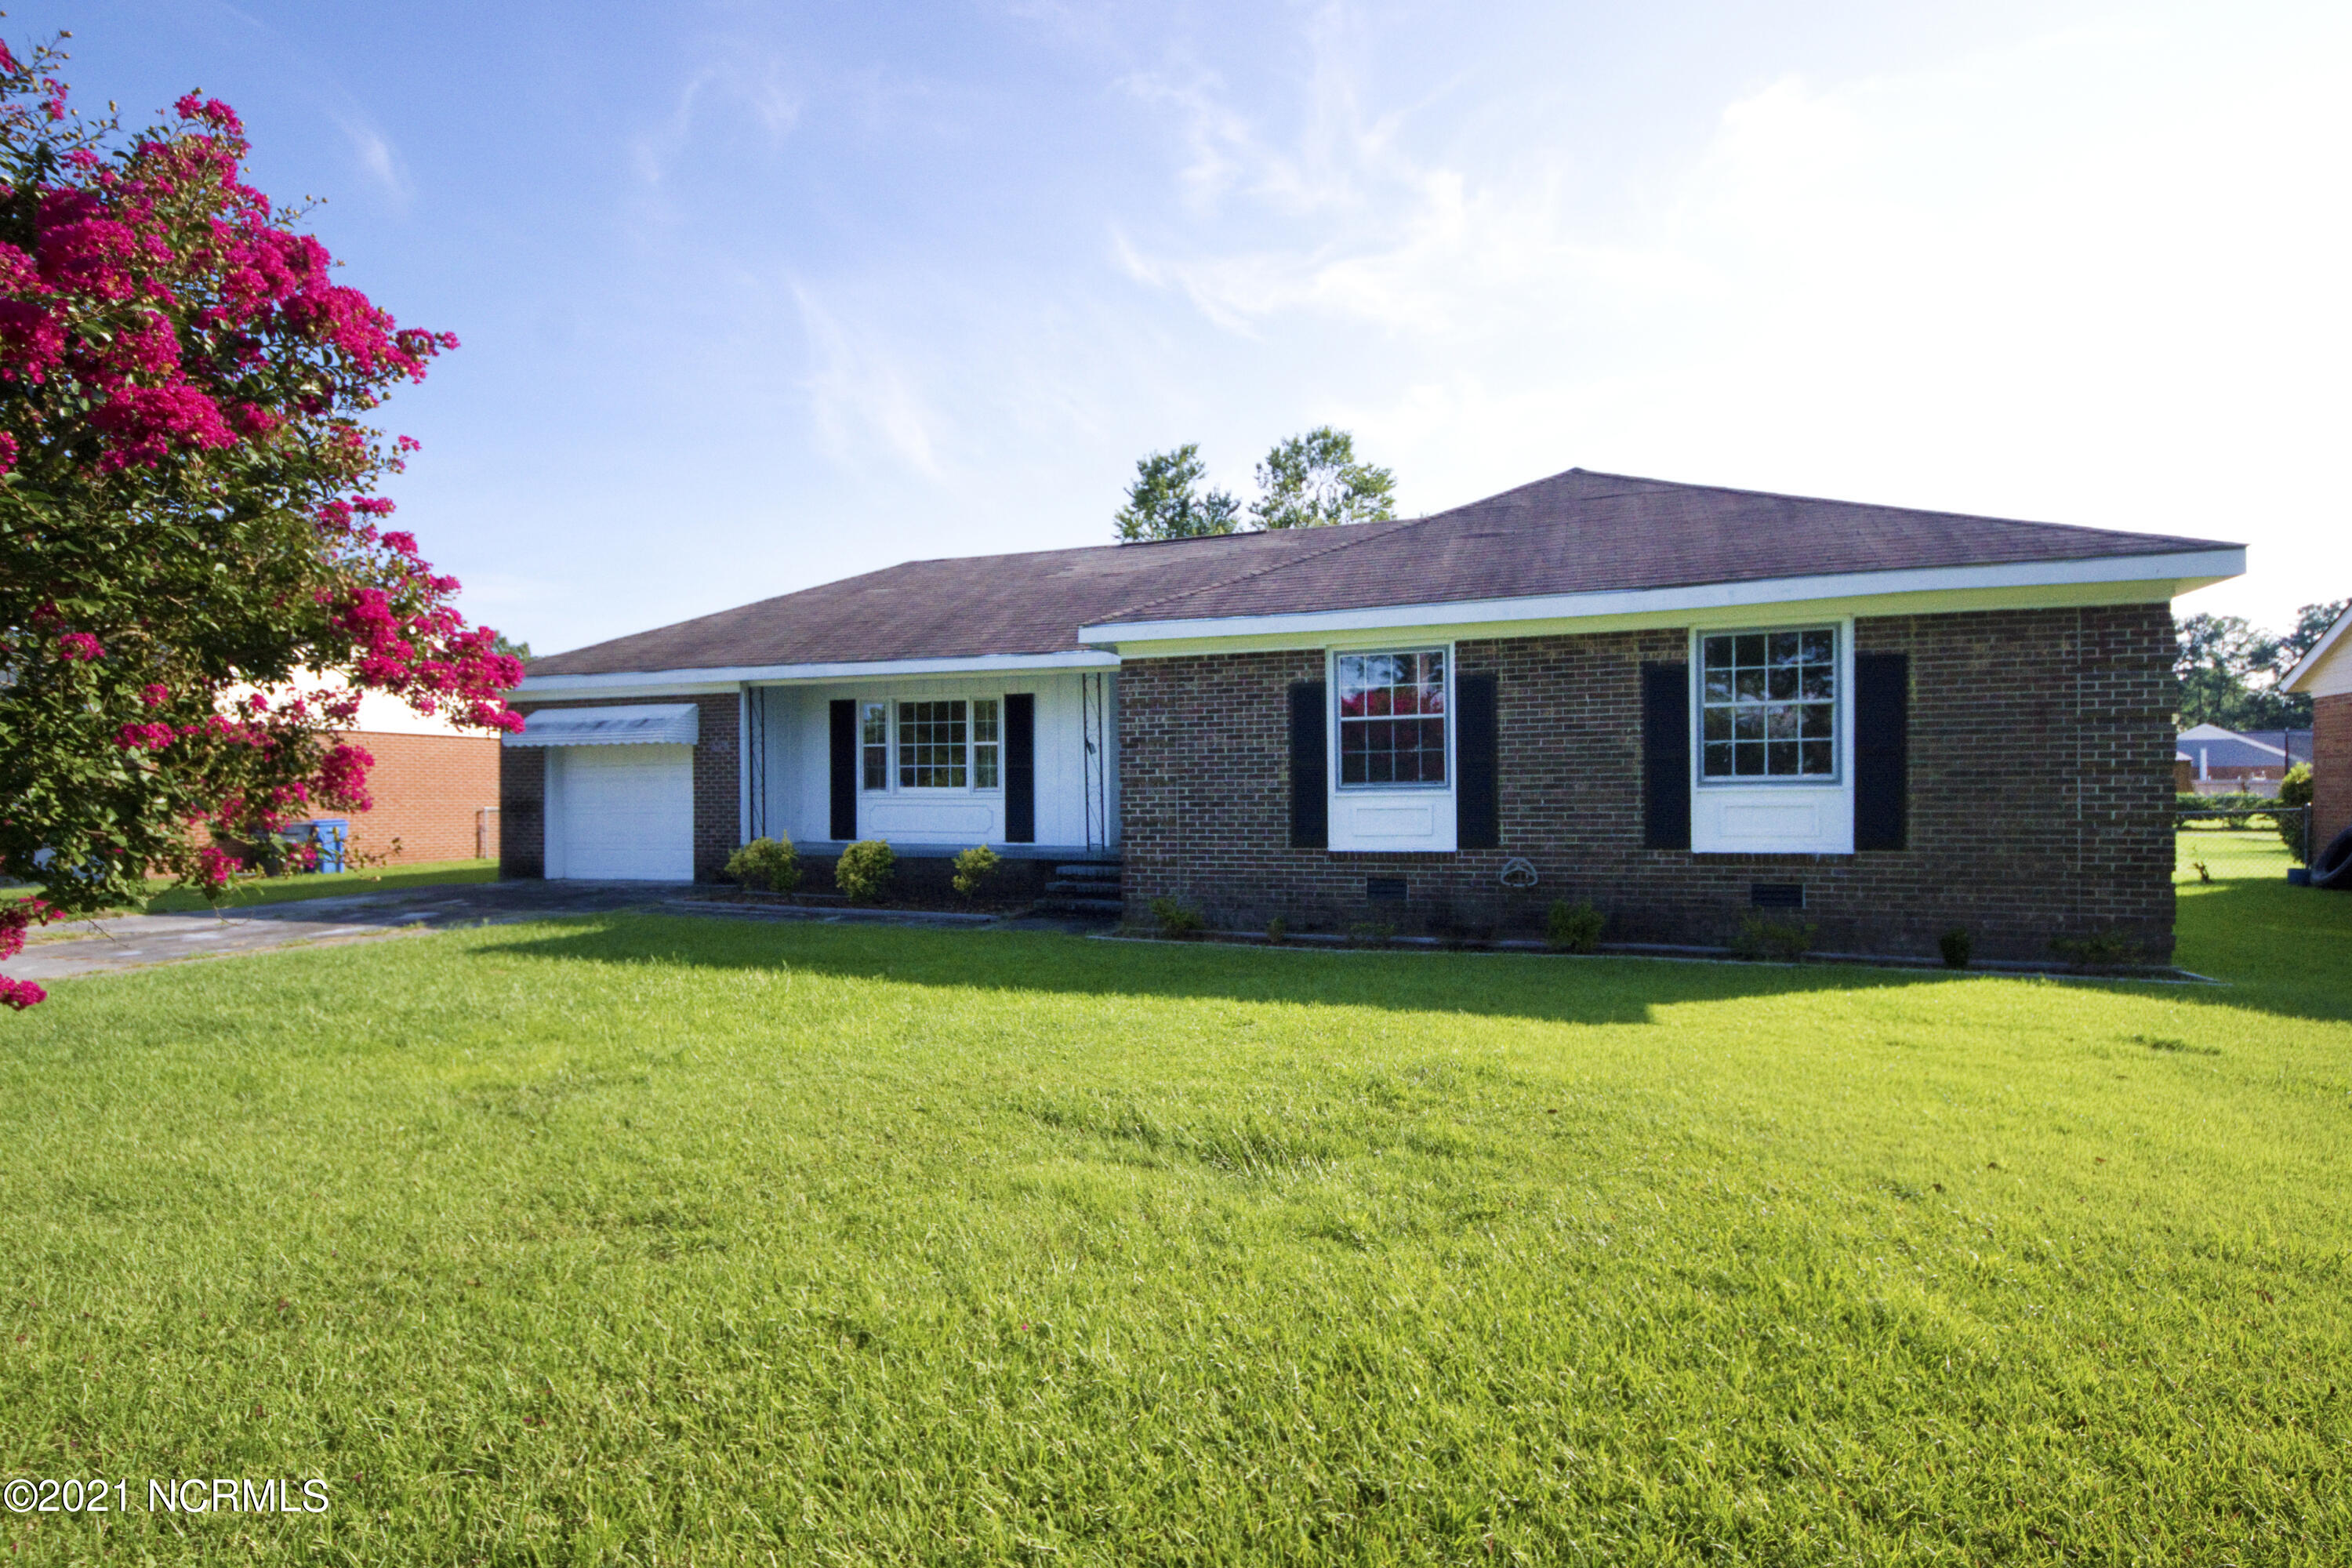 4 bedroom home in Jacksonville.  Well established neighborhood! This home features4 bedrooms and a bonus area with new carpeting.  Nice size yard with privacy.Don't miss out on this home